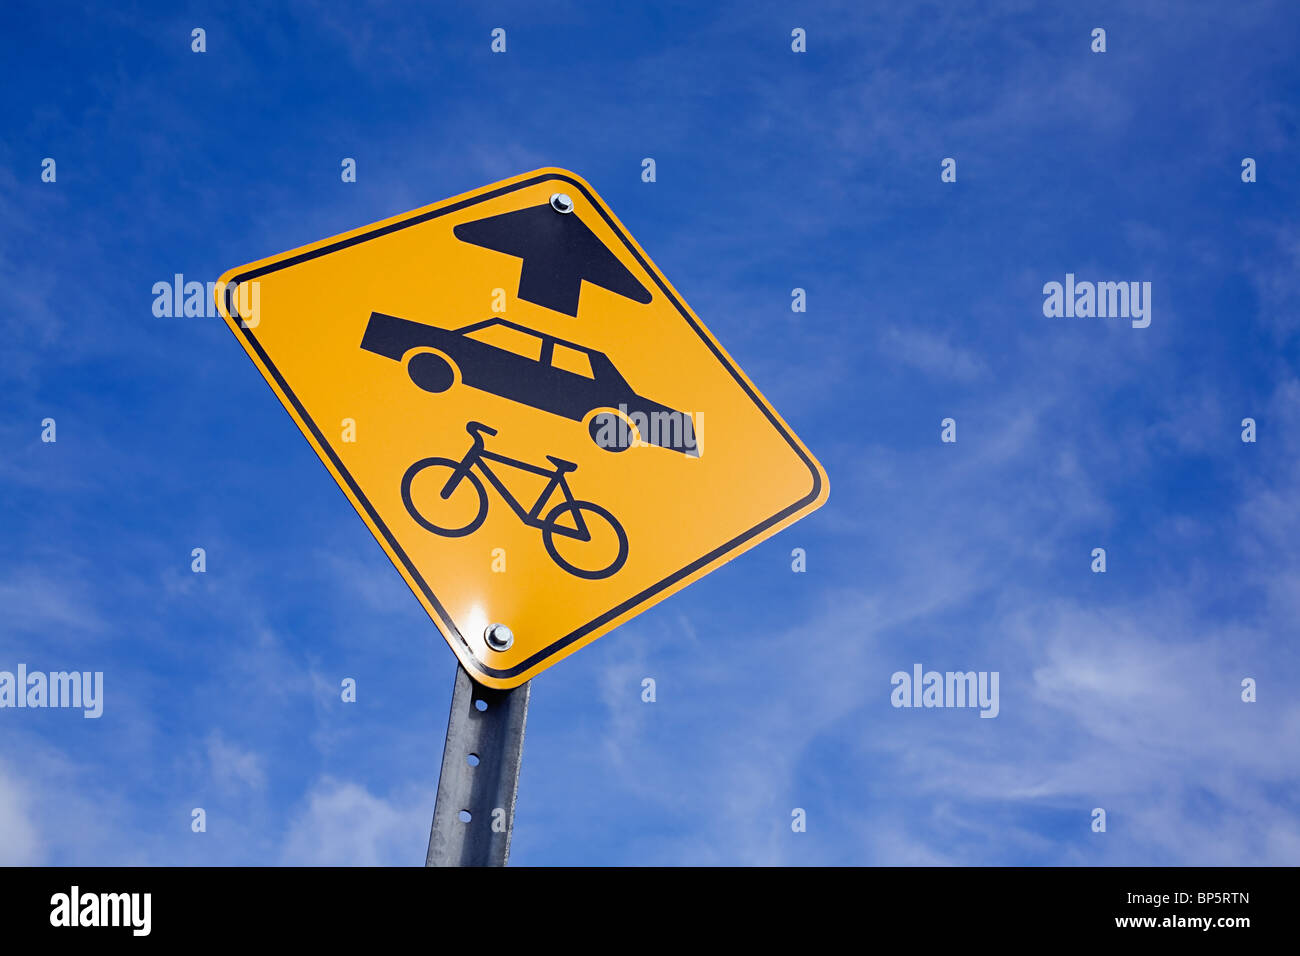 Road sign - Stock Image